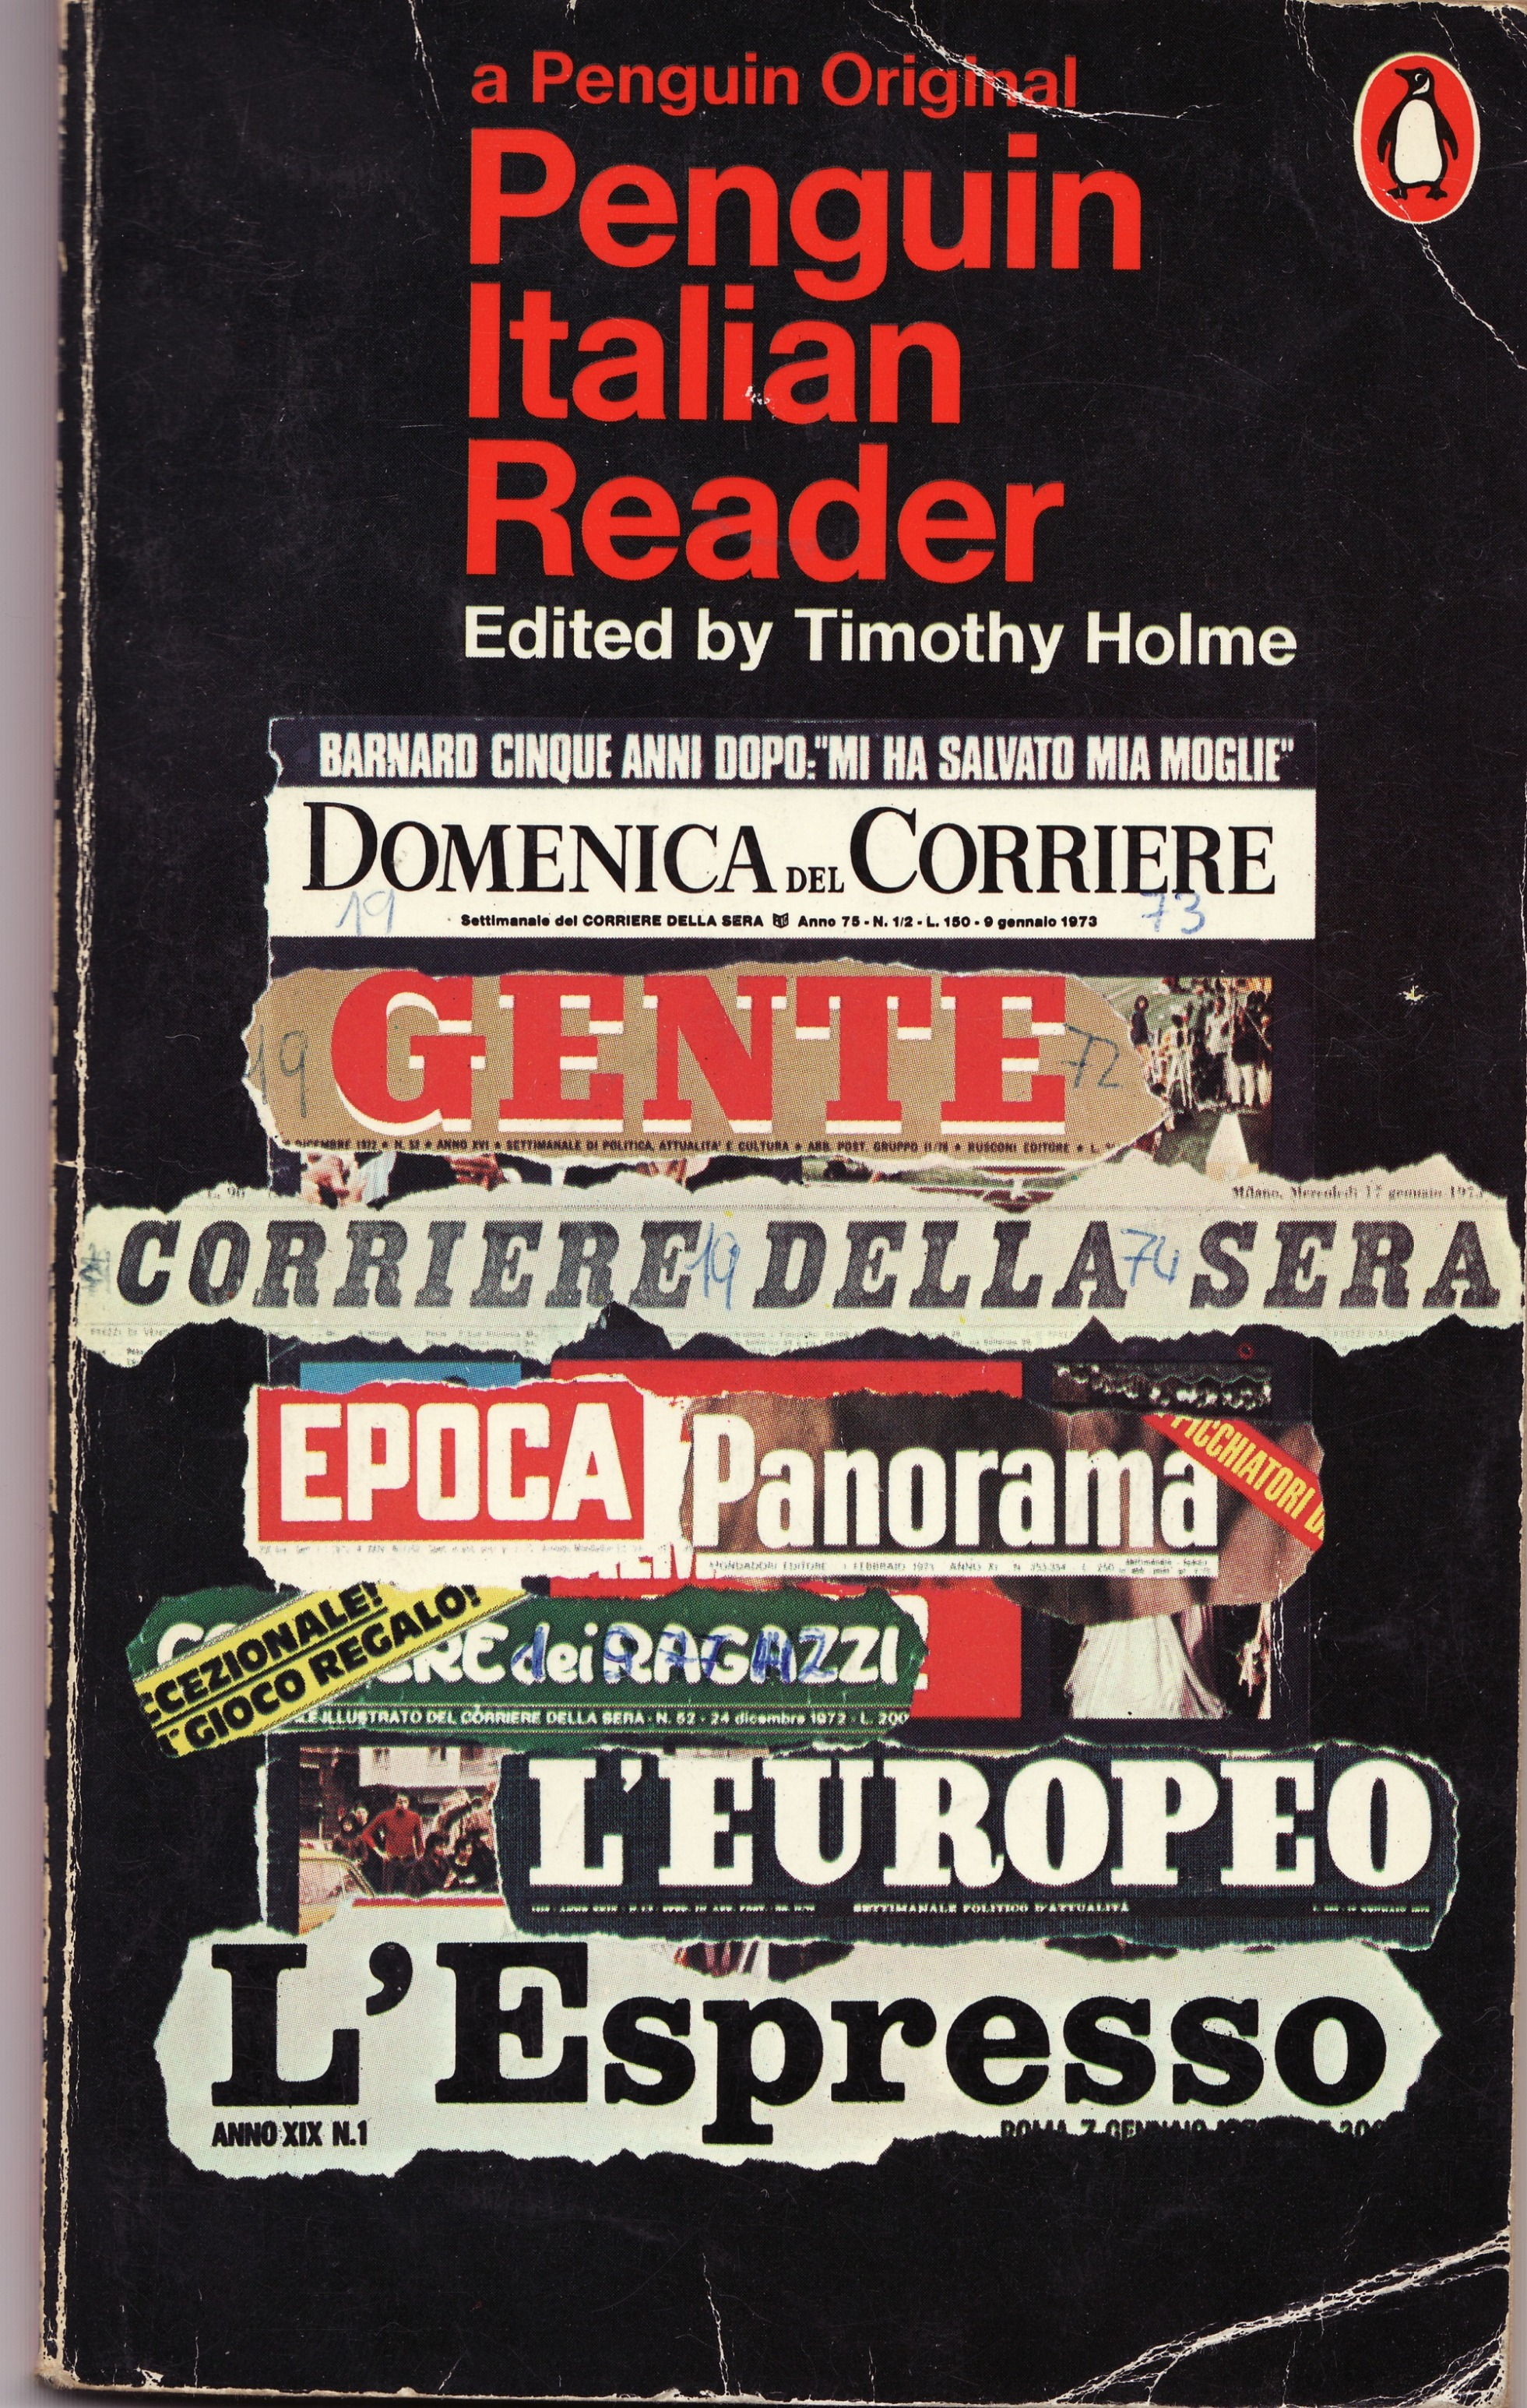 The Penguin Italian Reader